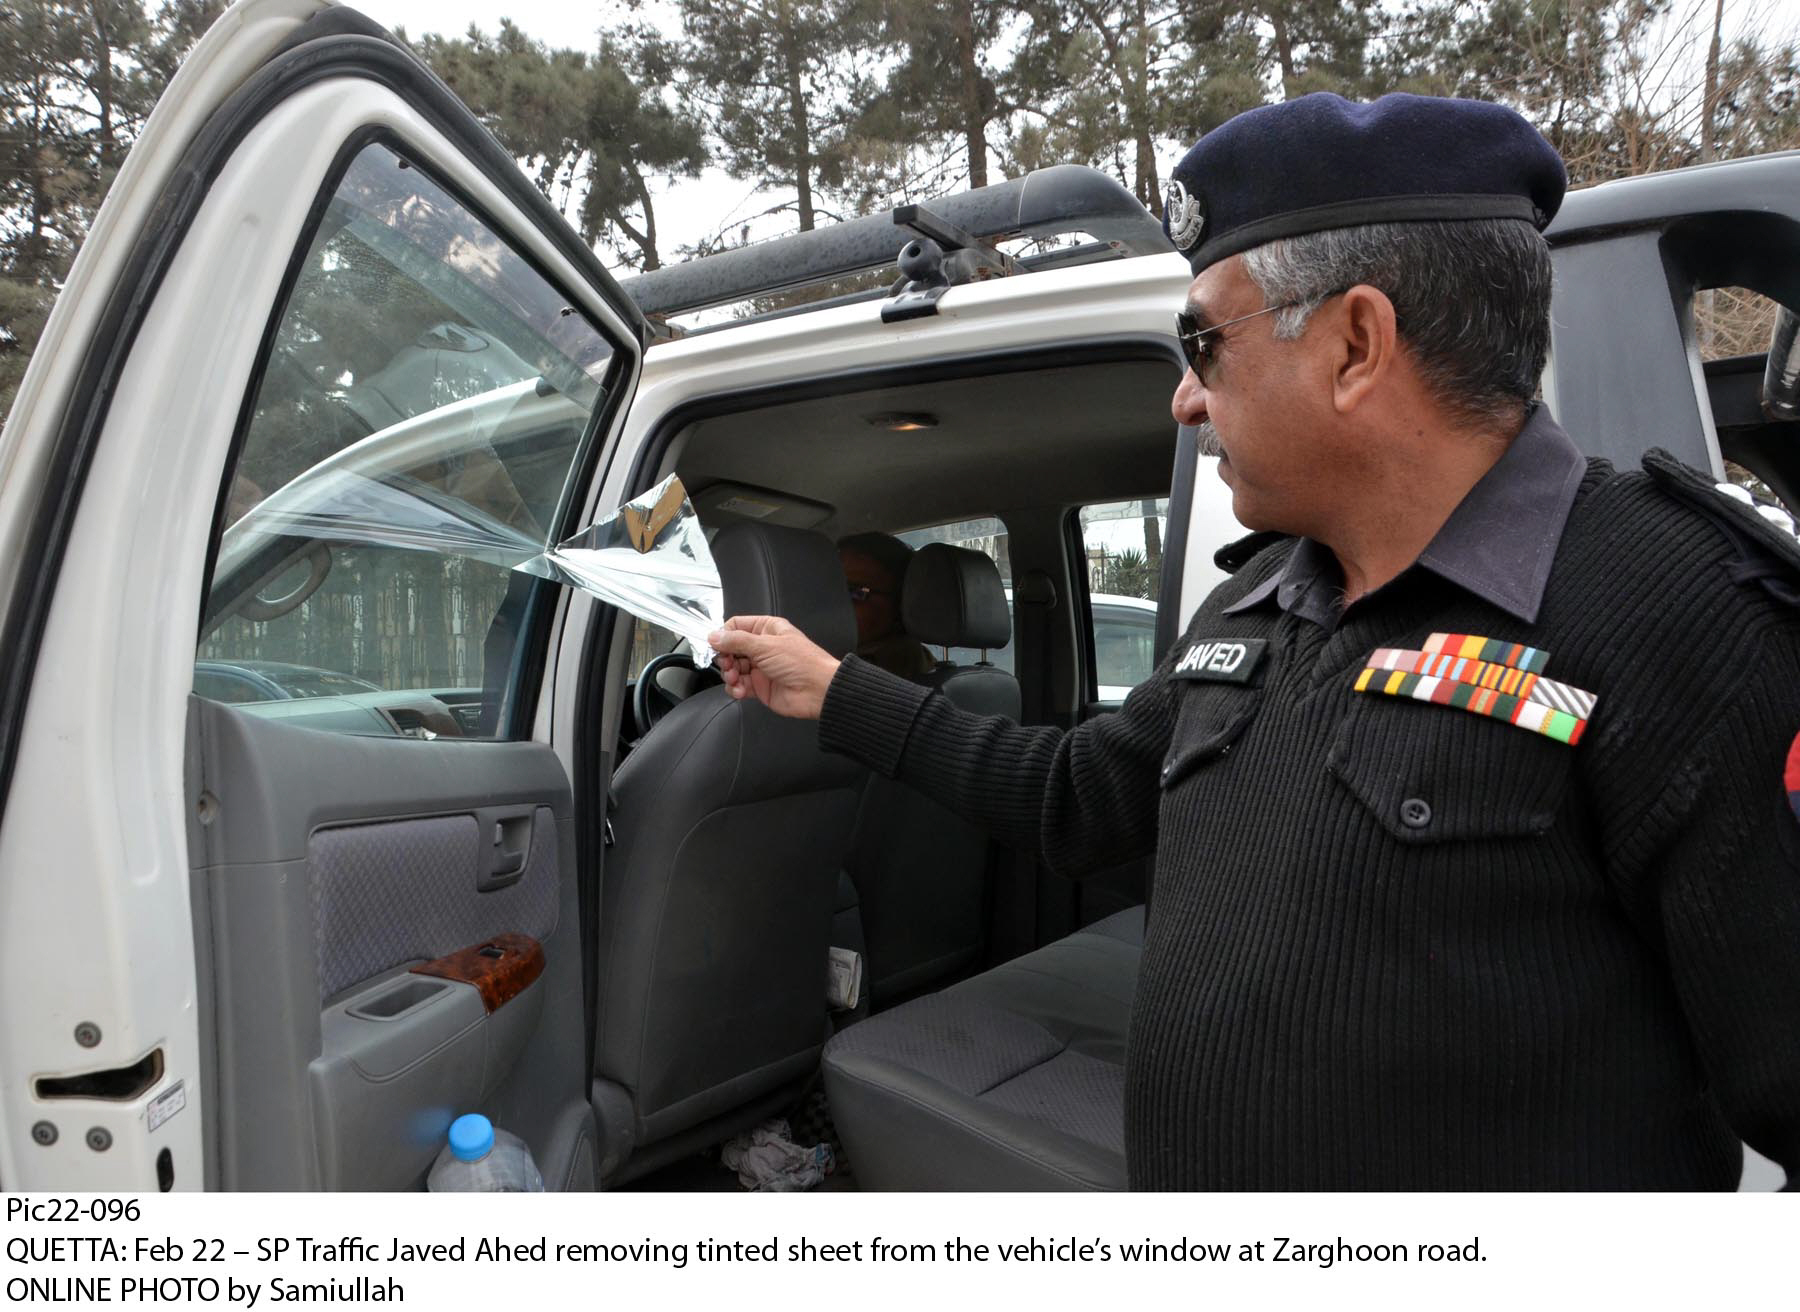 Traffic Superintendent of Police Javed Ahad removing tint from a vehicle's window on Zarghoon Road in Quetta. PHOTO: ONLINE